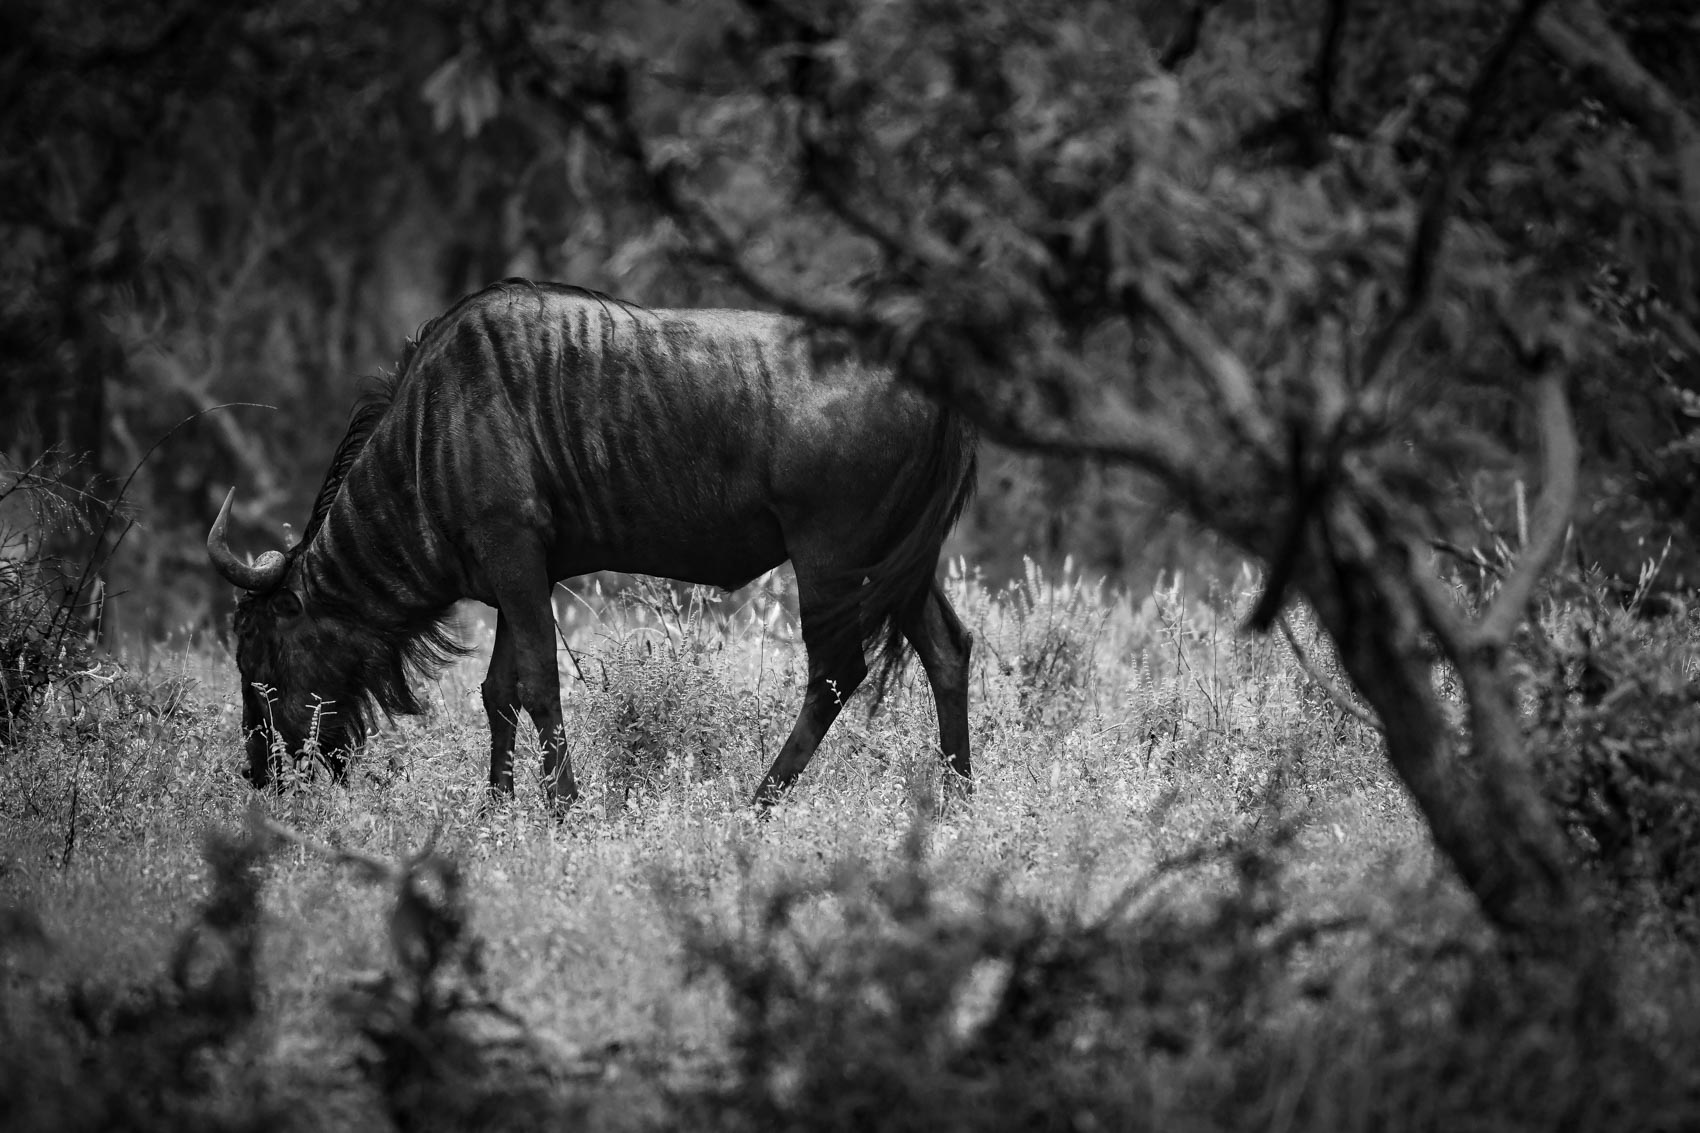 Wildebeest grazing on African Savana in Kruger National Park